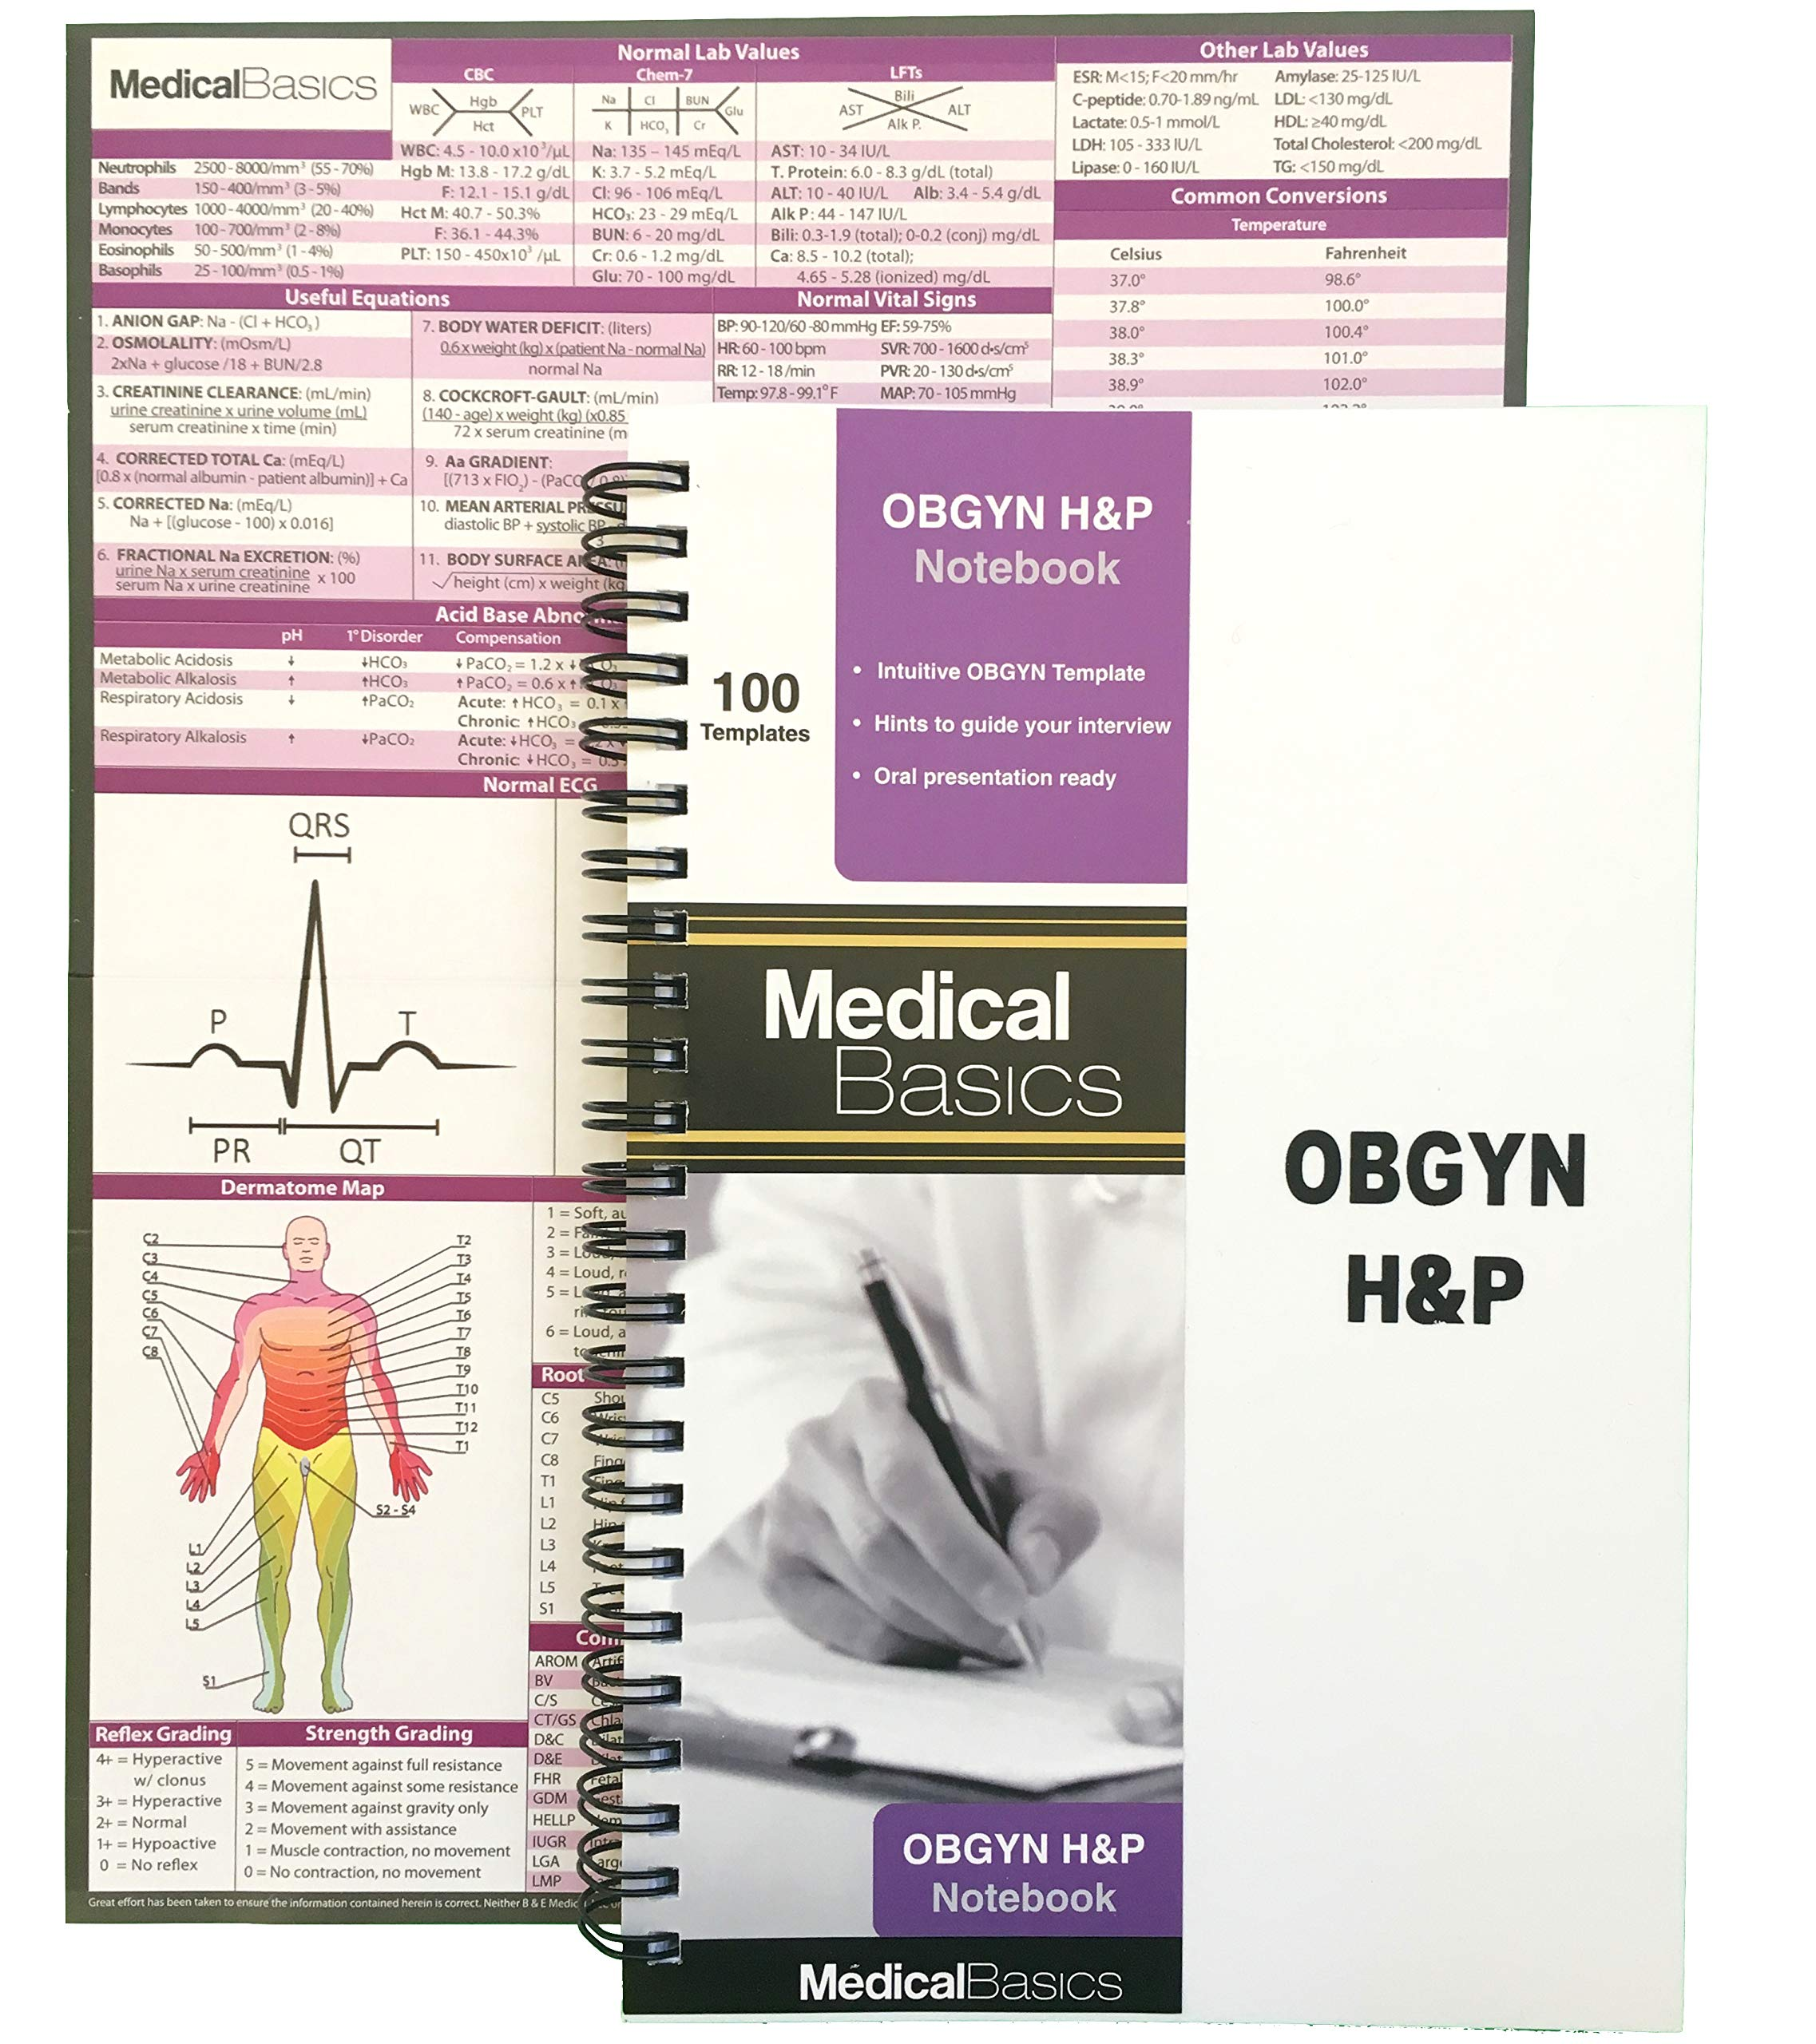 OBGYN H&P Notebook Medical History and Physical Notebook, 100 Medical templates with Perforations by Medical Basics